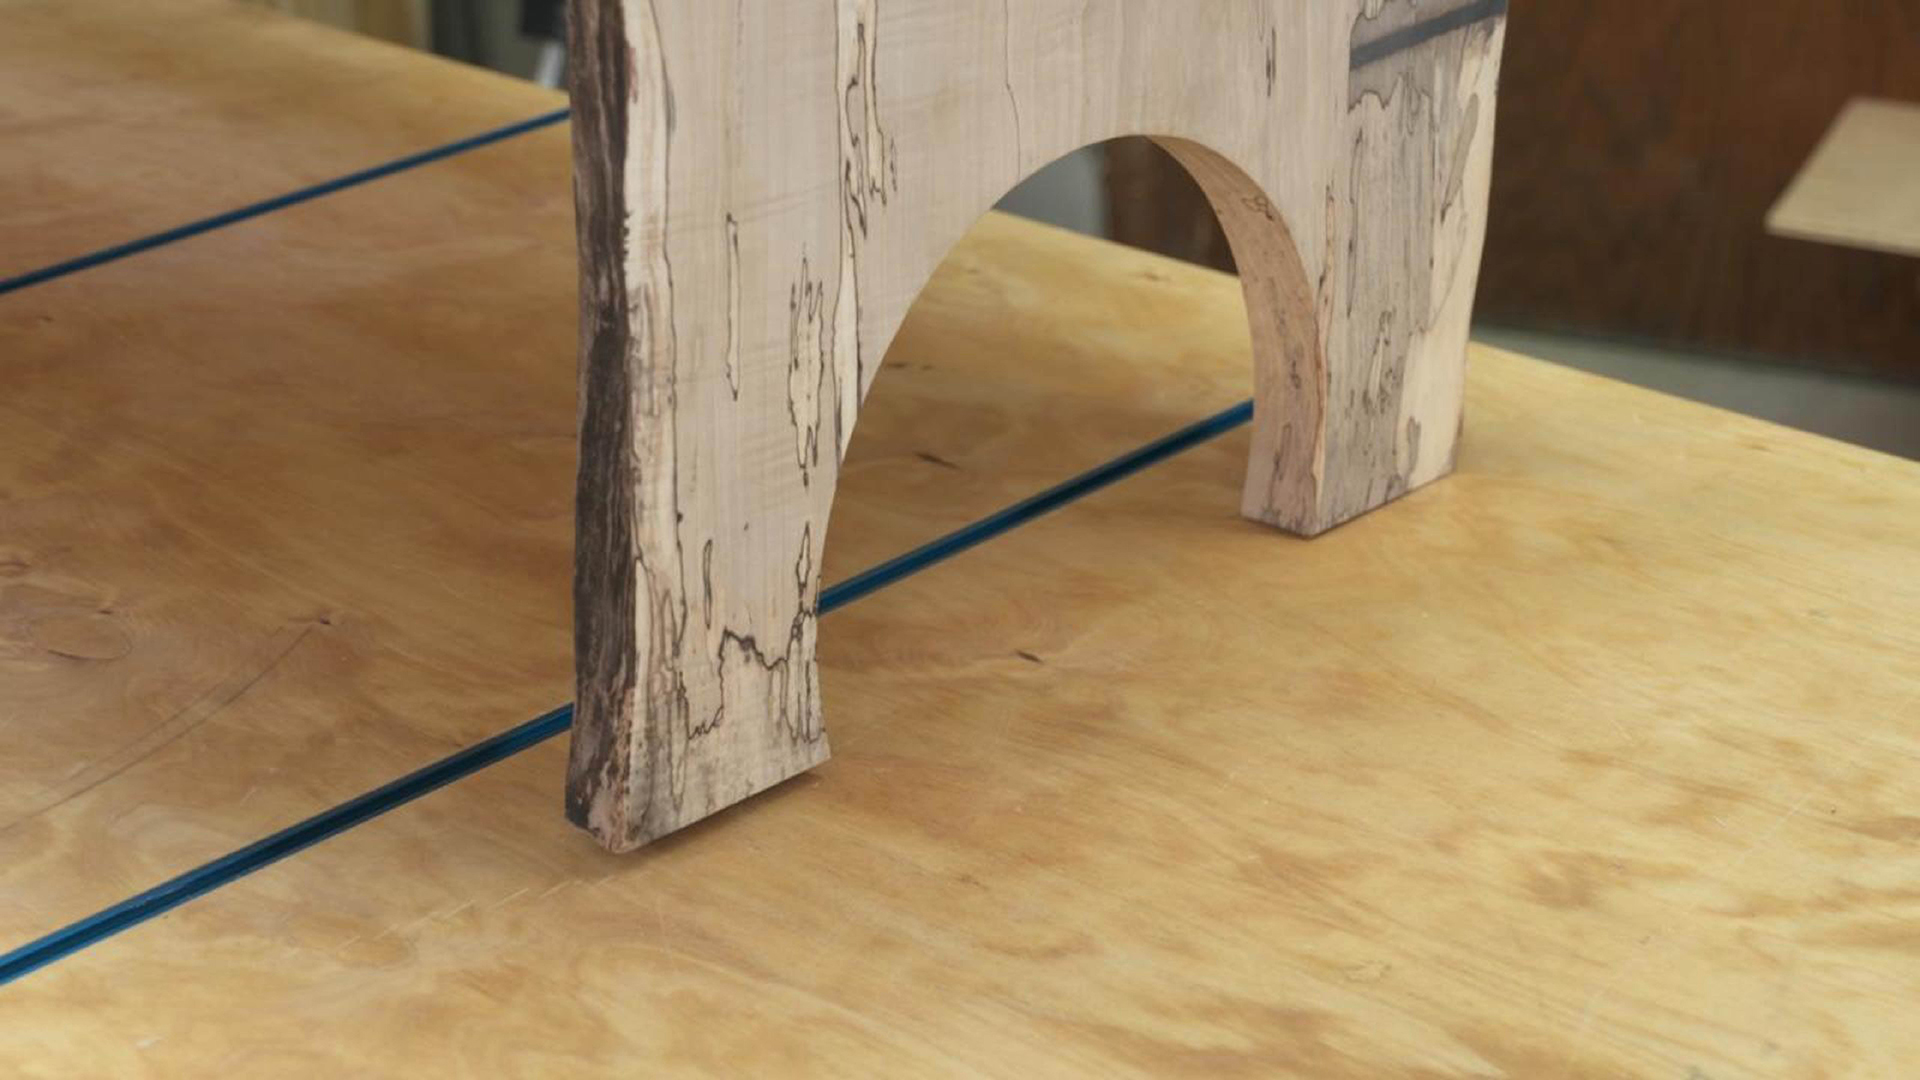 Woodworking Restoration Guide - Repairing a Wobbly Table